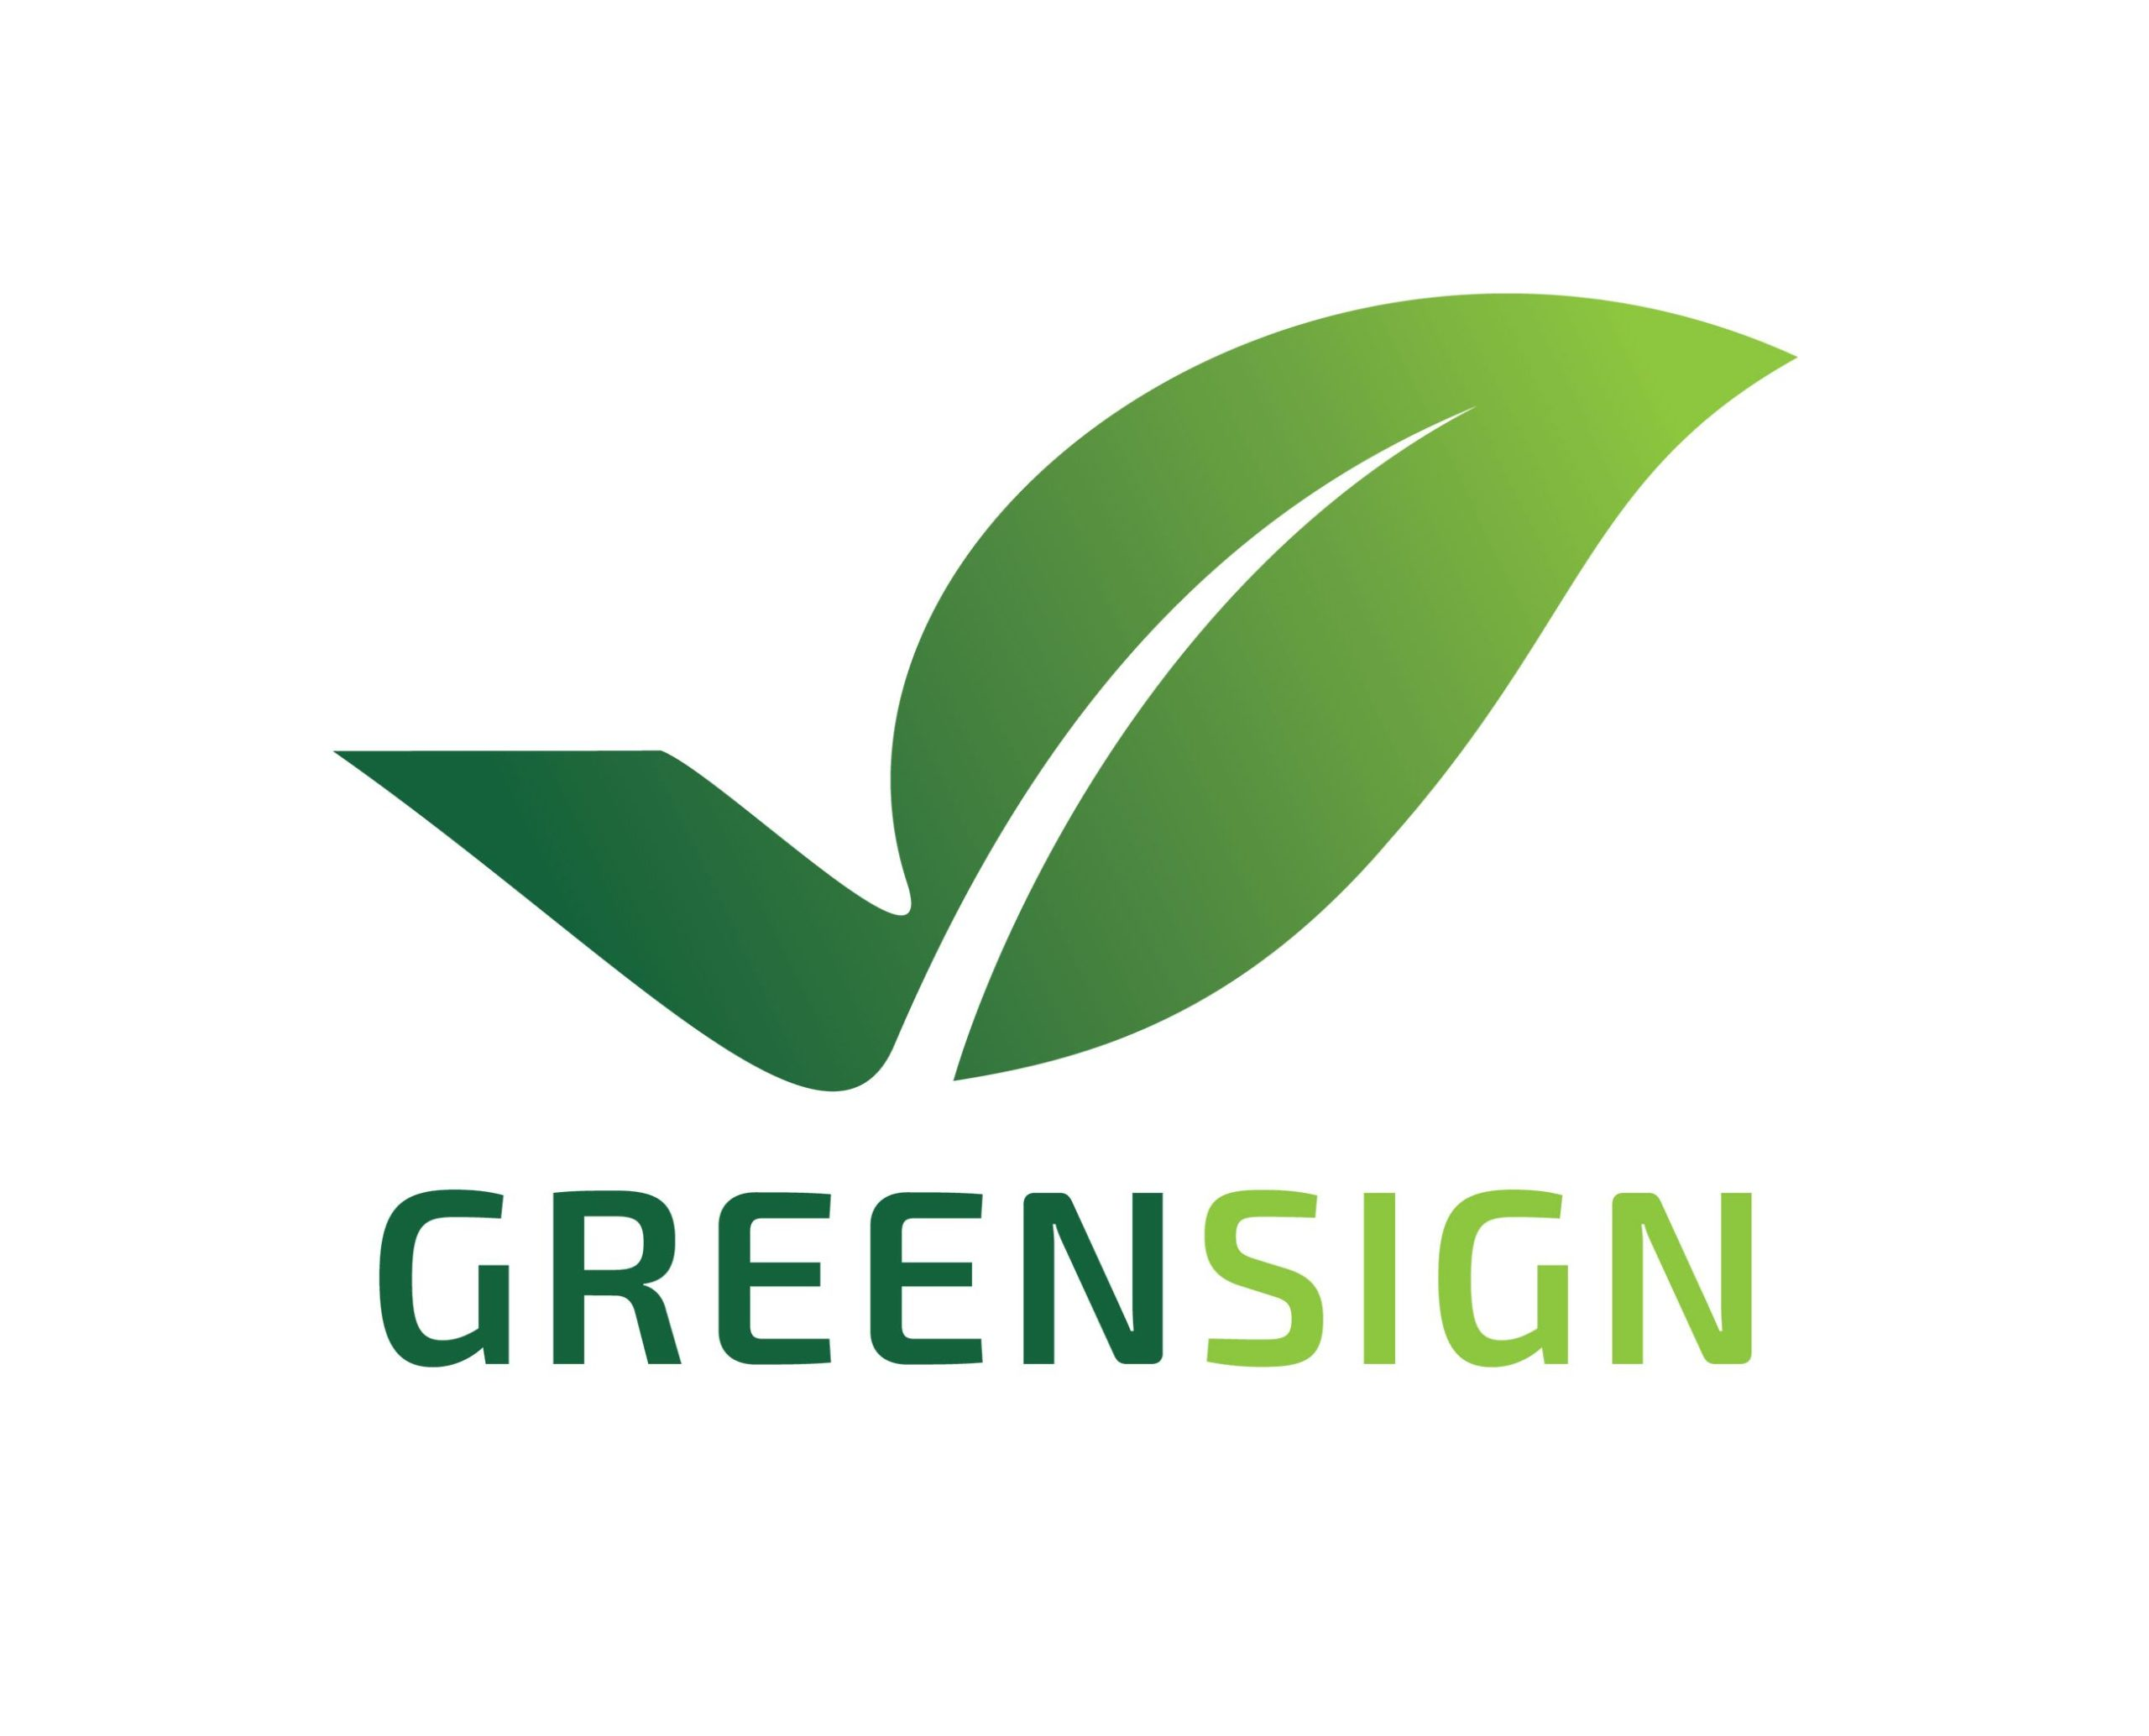 Greensign